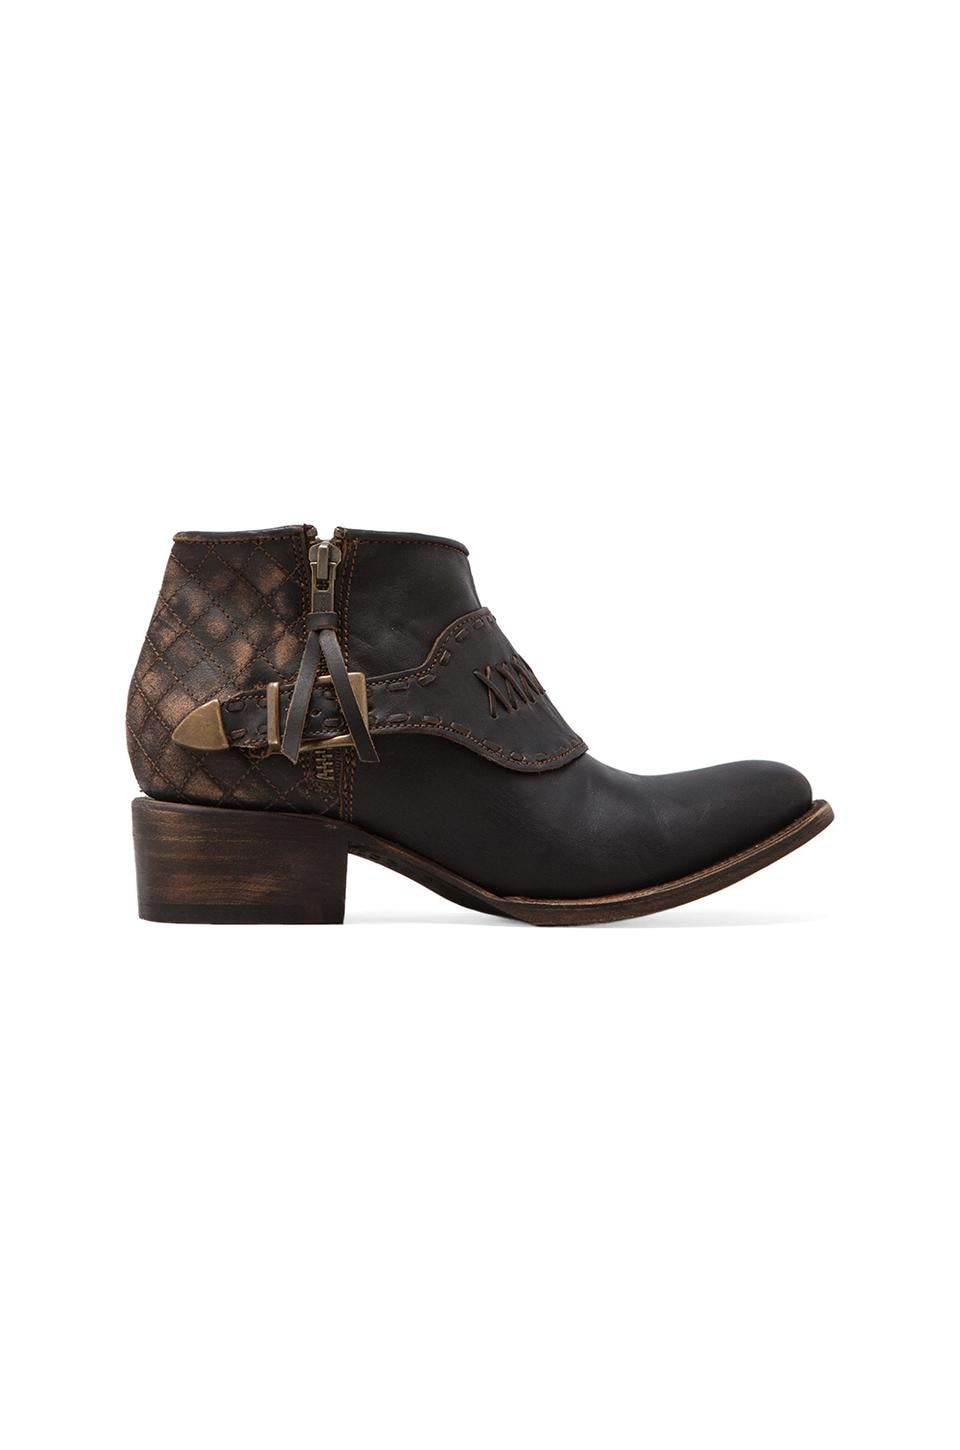 Freebird by Steven Grand Boot in Black